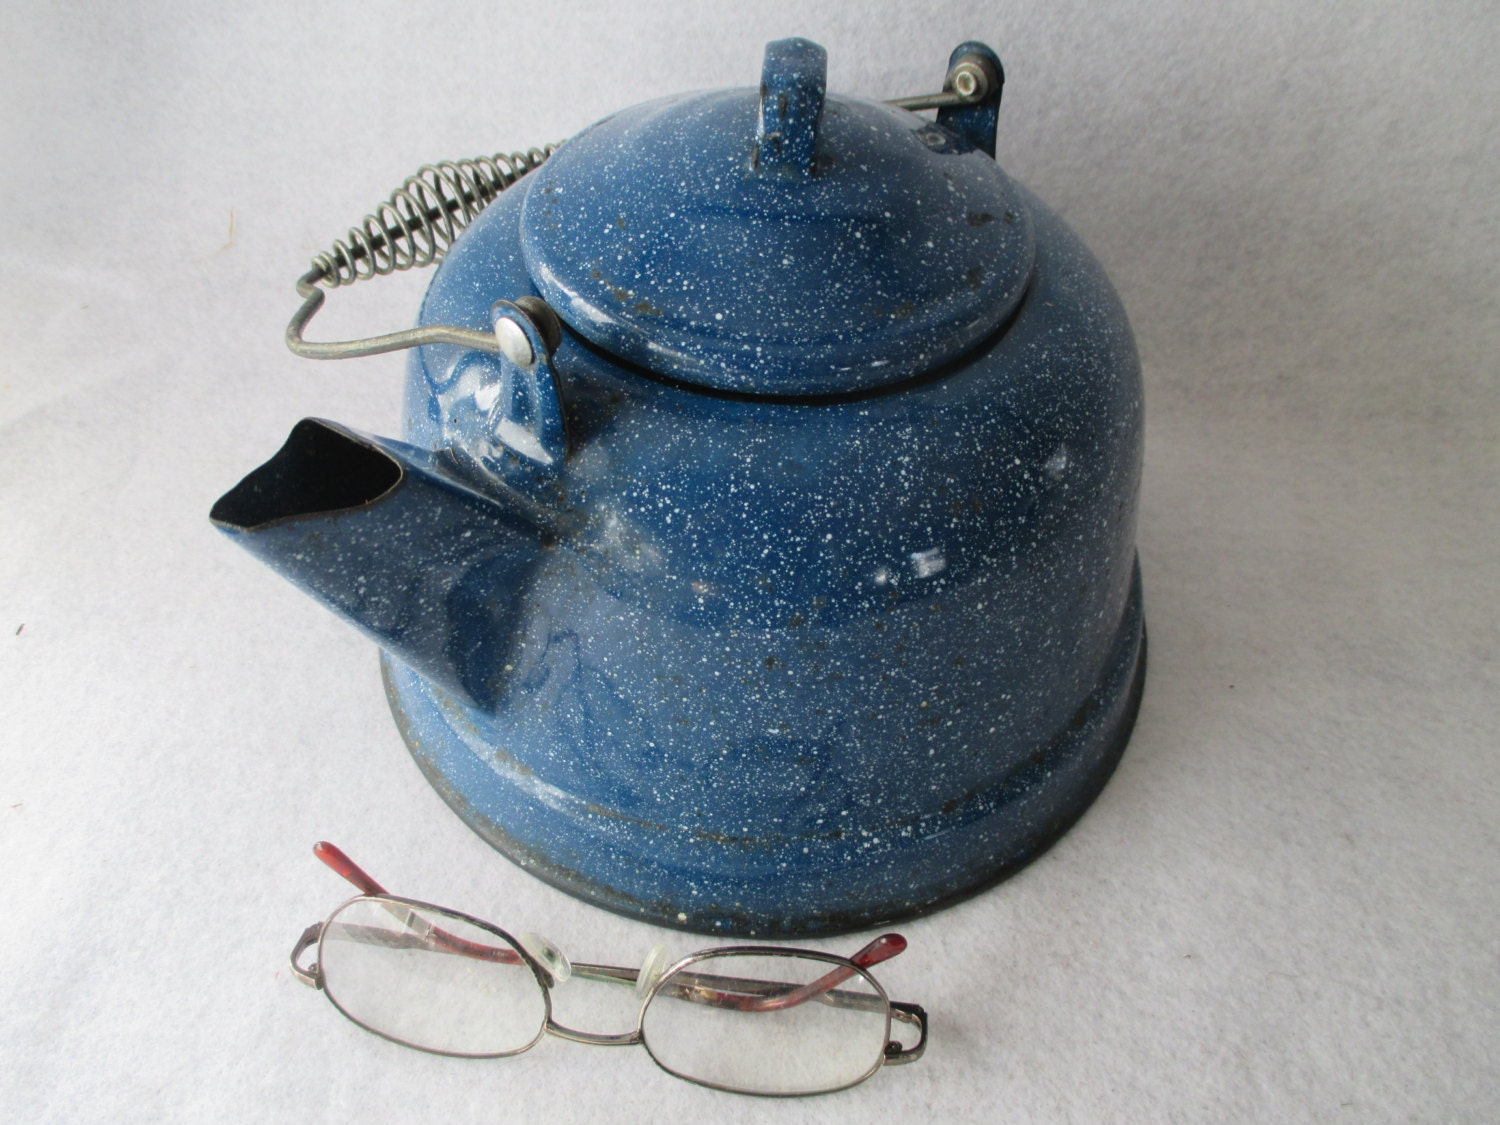 Tea Kettle Blue Speckled Graniteware Vintage Enamelware